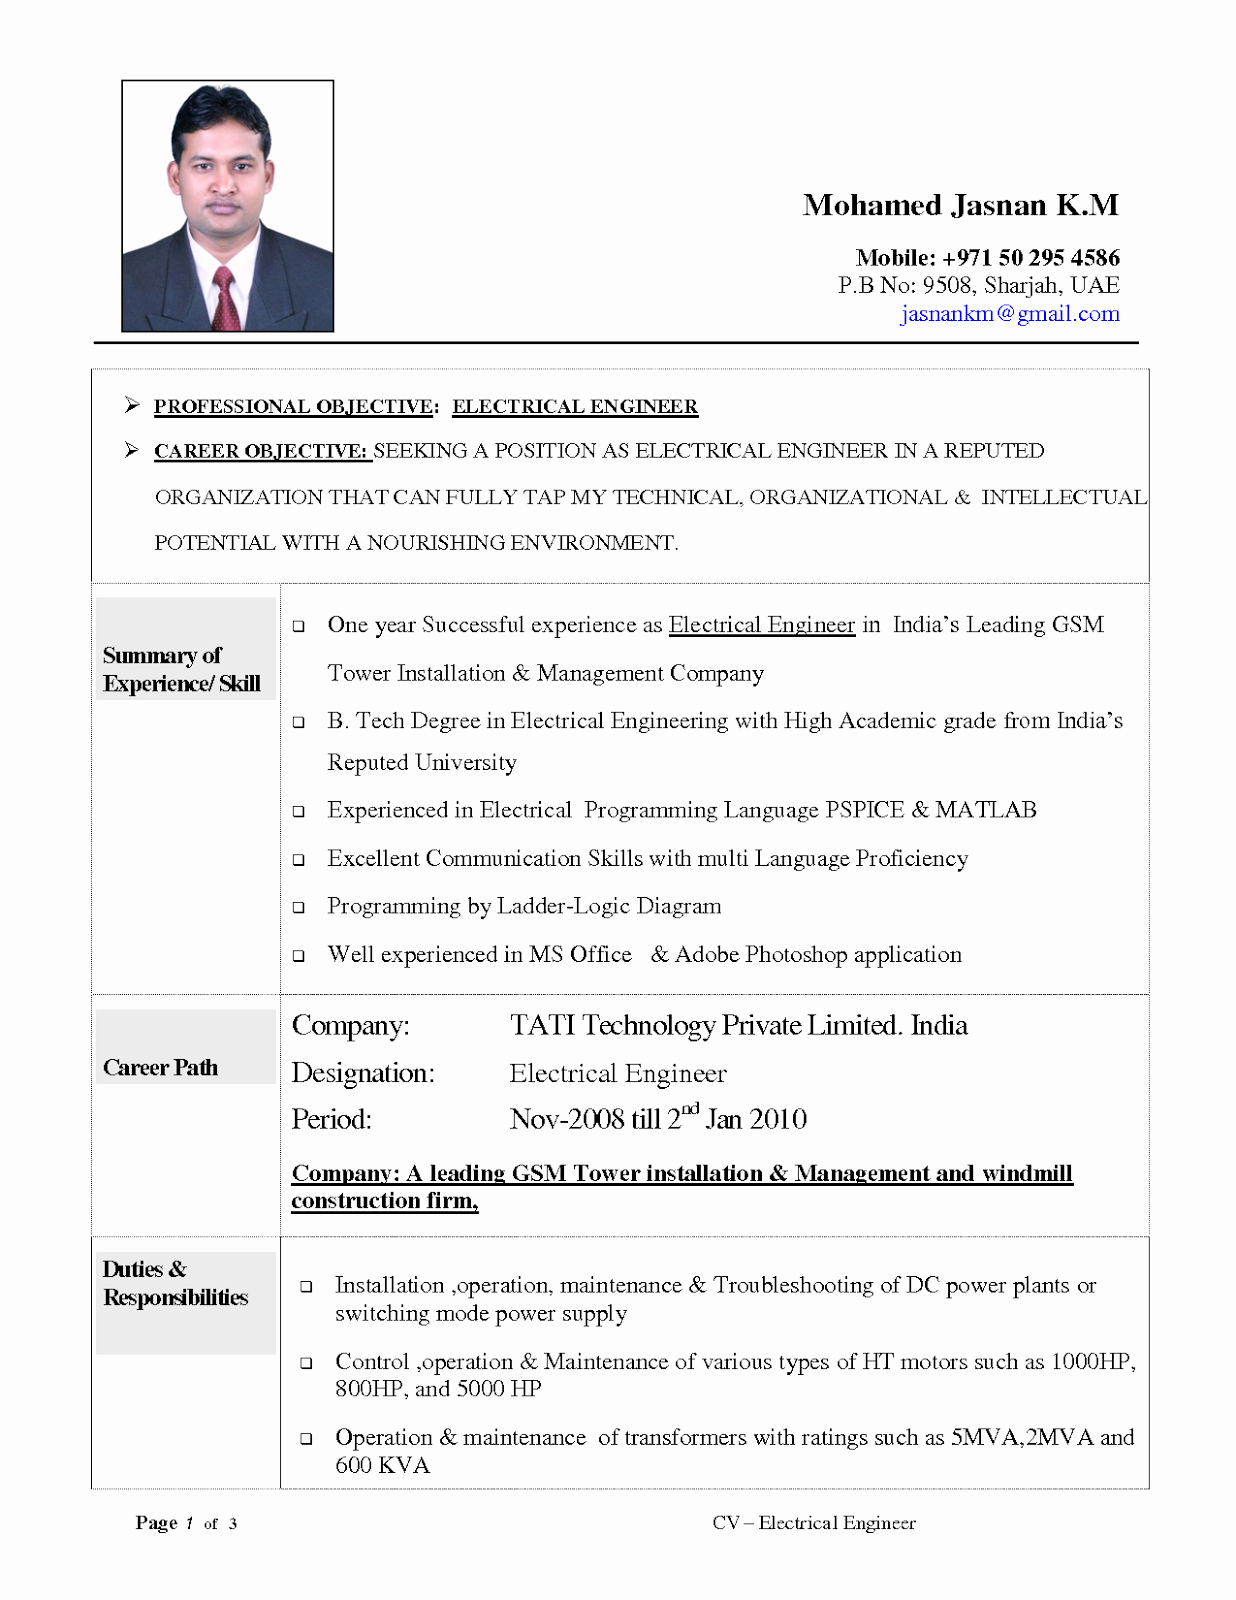 Electrical Engineer Resume Sample Beautiful Resume Objective Examples Electrical Engineering Tipss